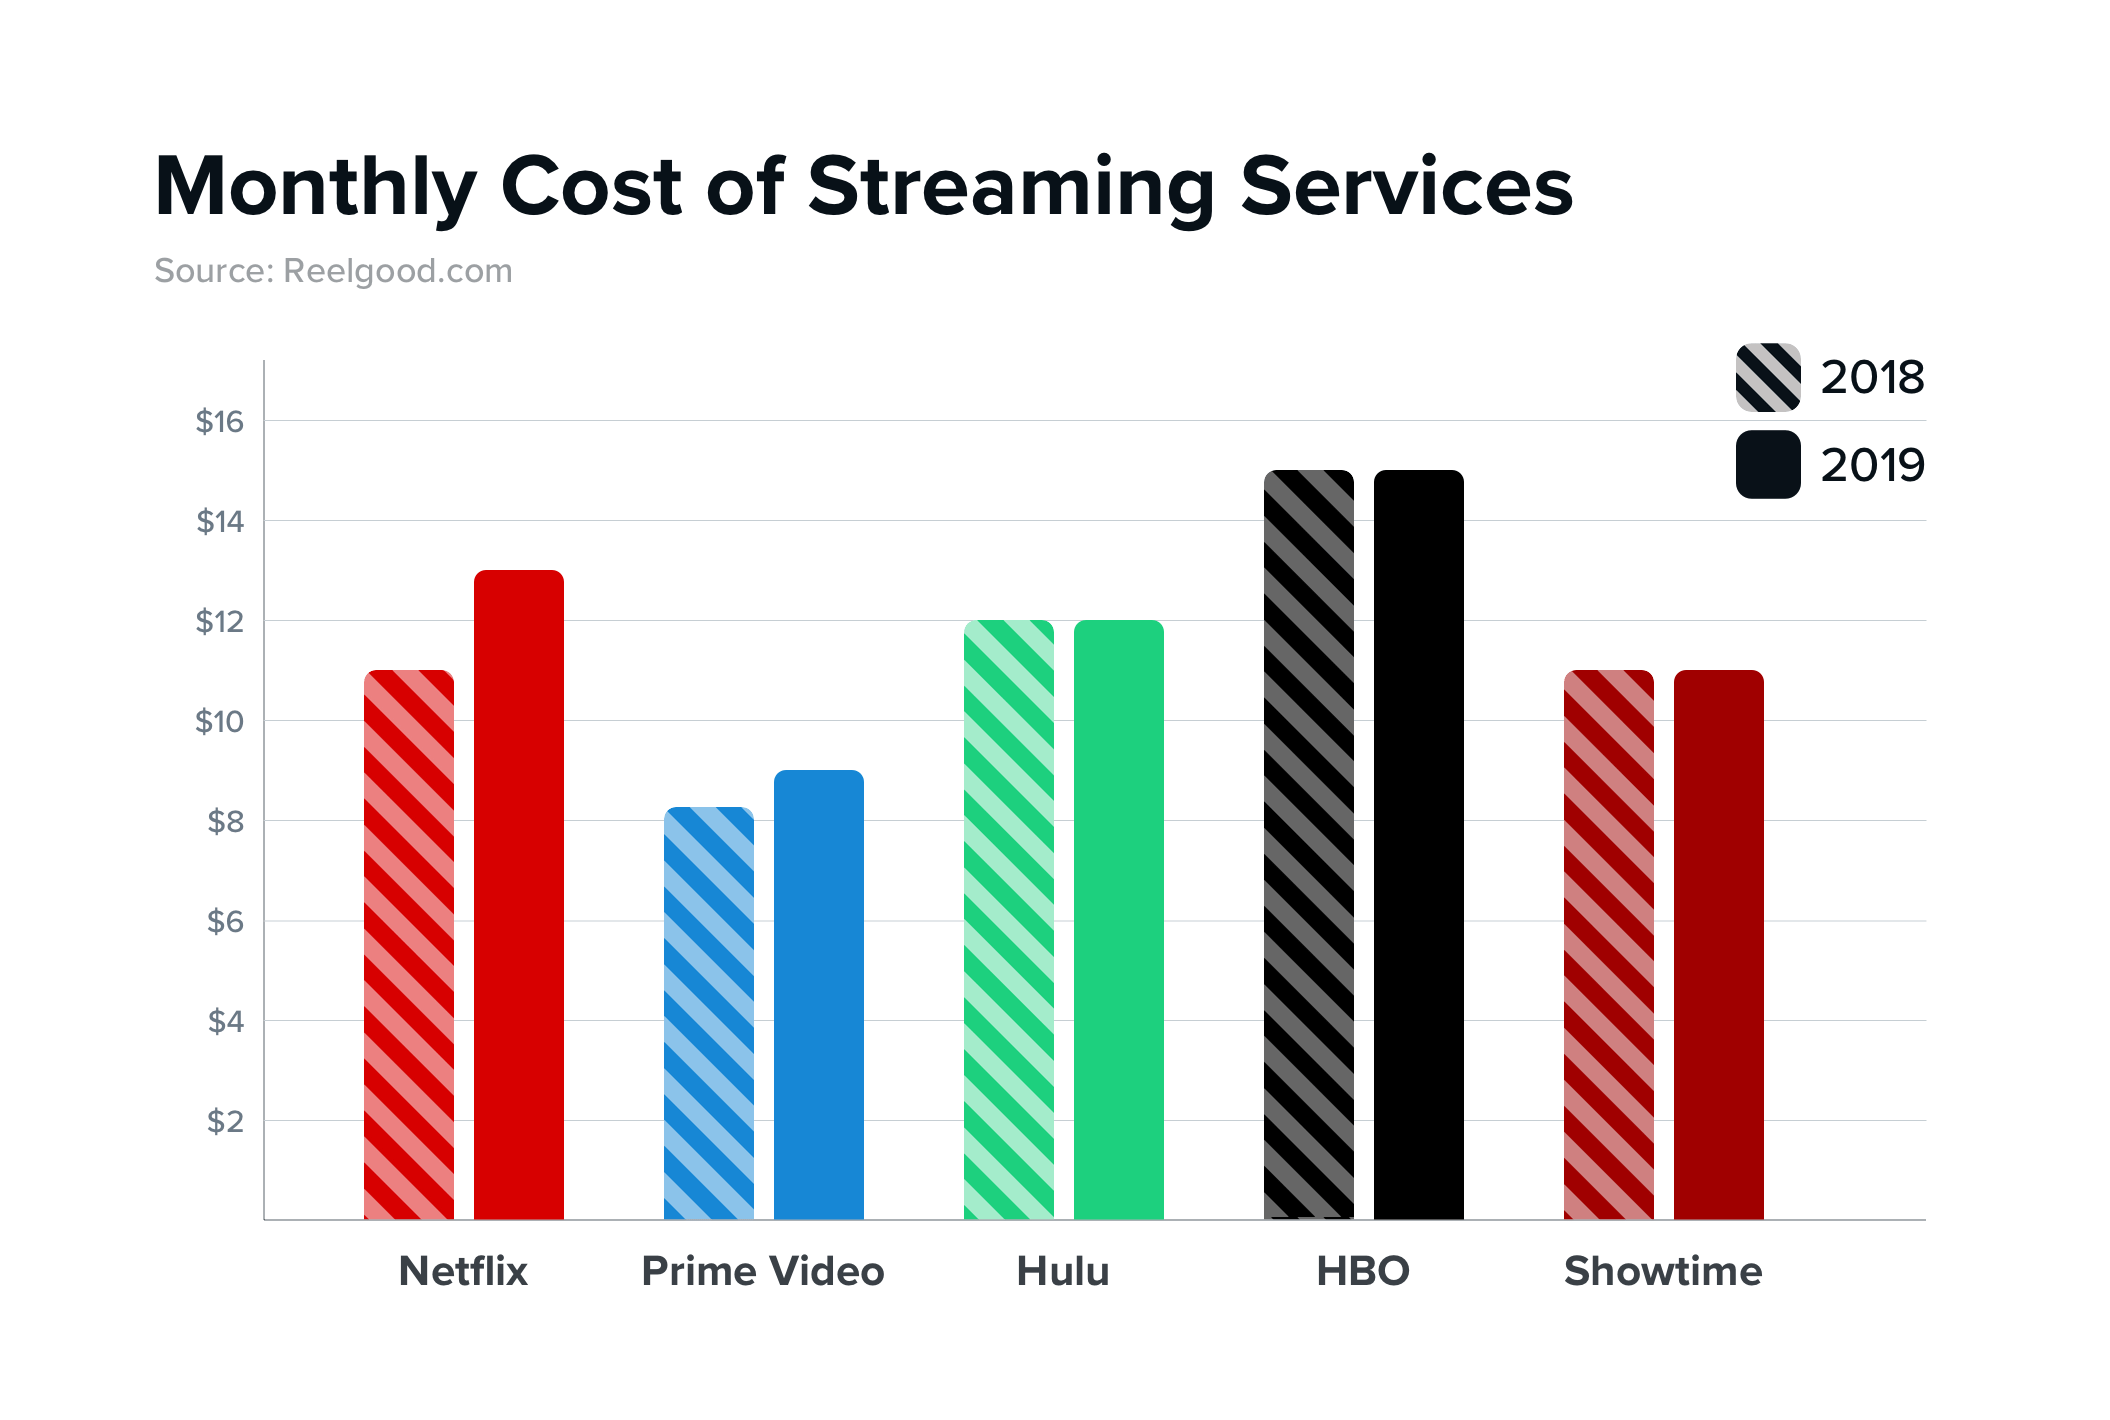 Monthly Cost of Streaming Services 2018 - 2019